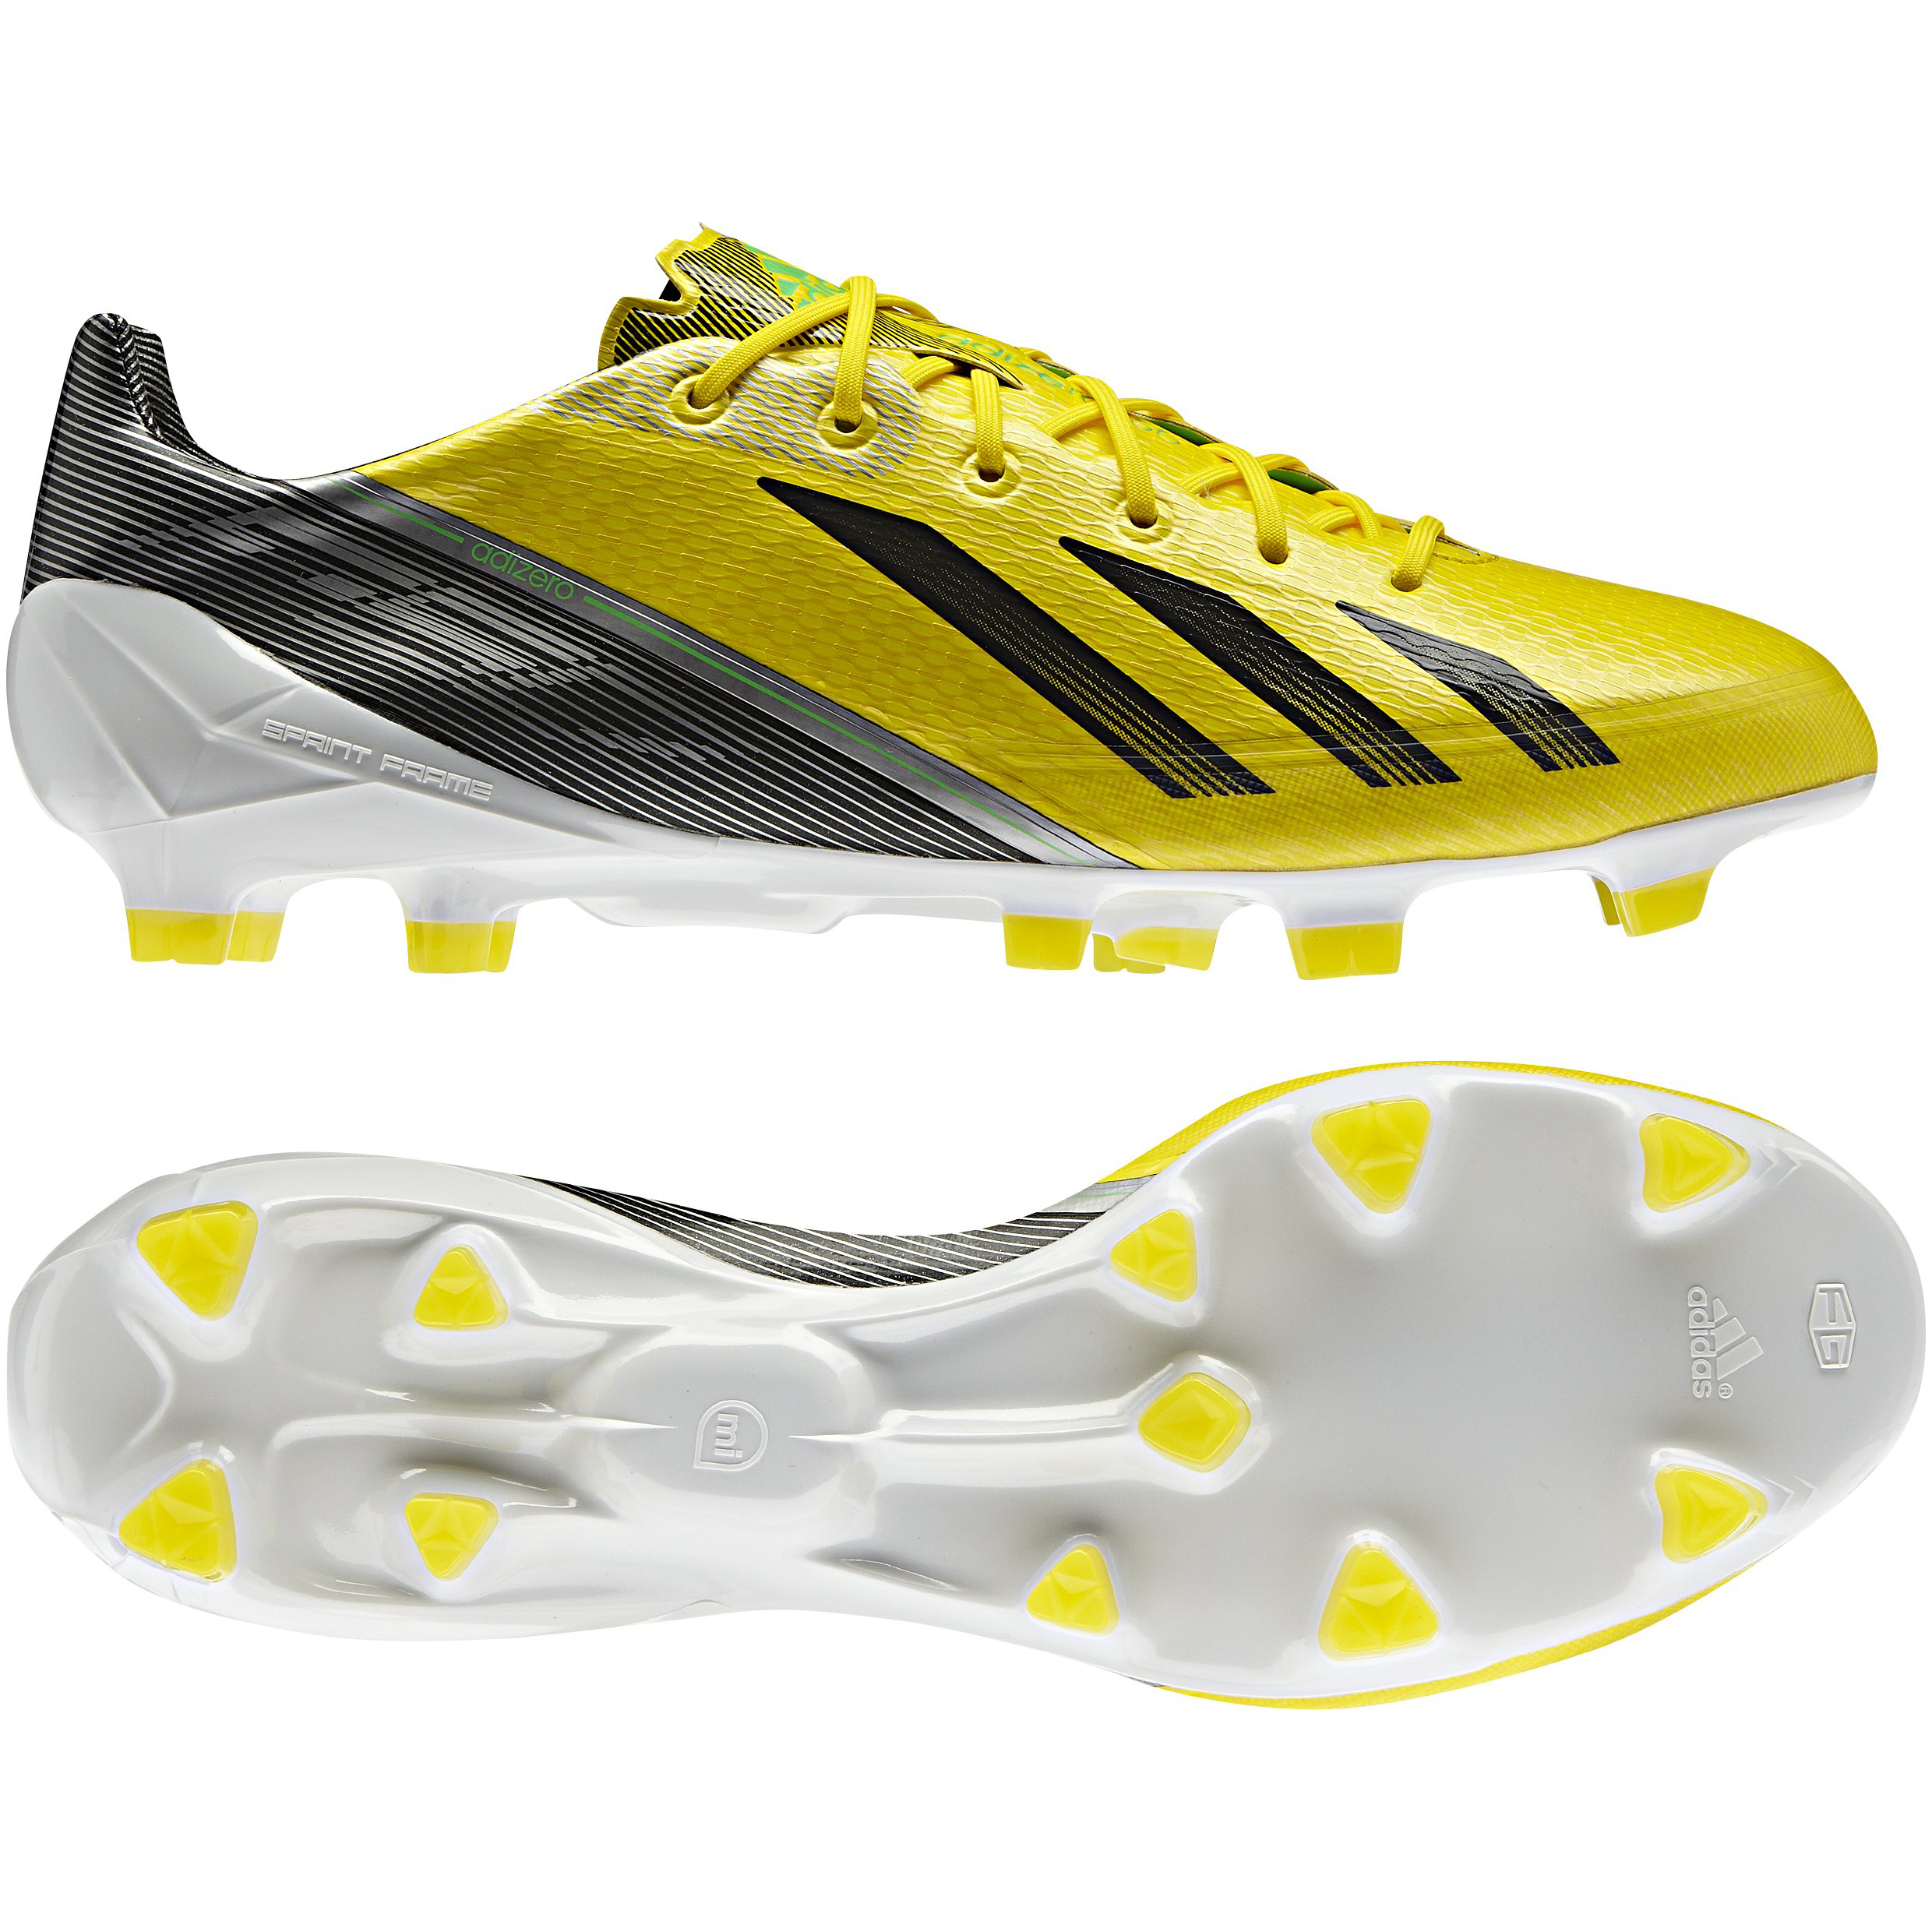 adidas AdiZero F50 TRX Firm Ground Synthetic Football Boots - Vivid Yellow/Black/Green Zest